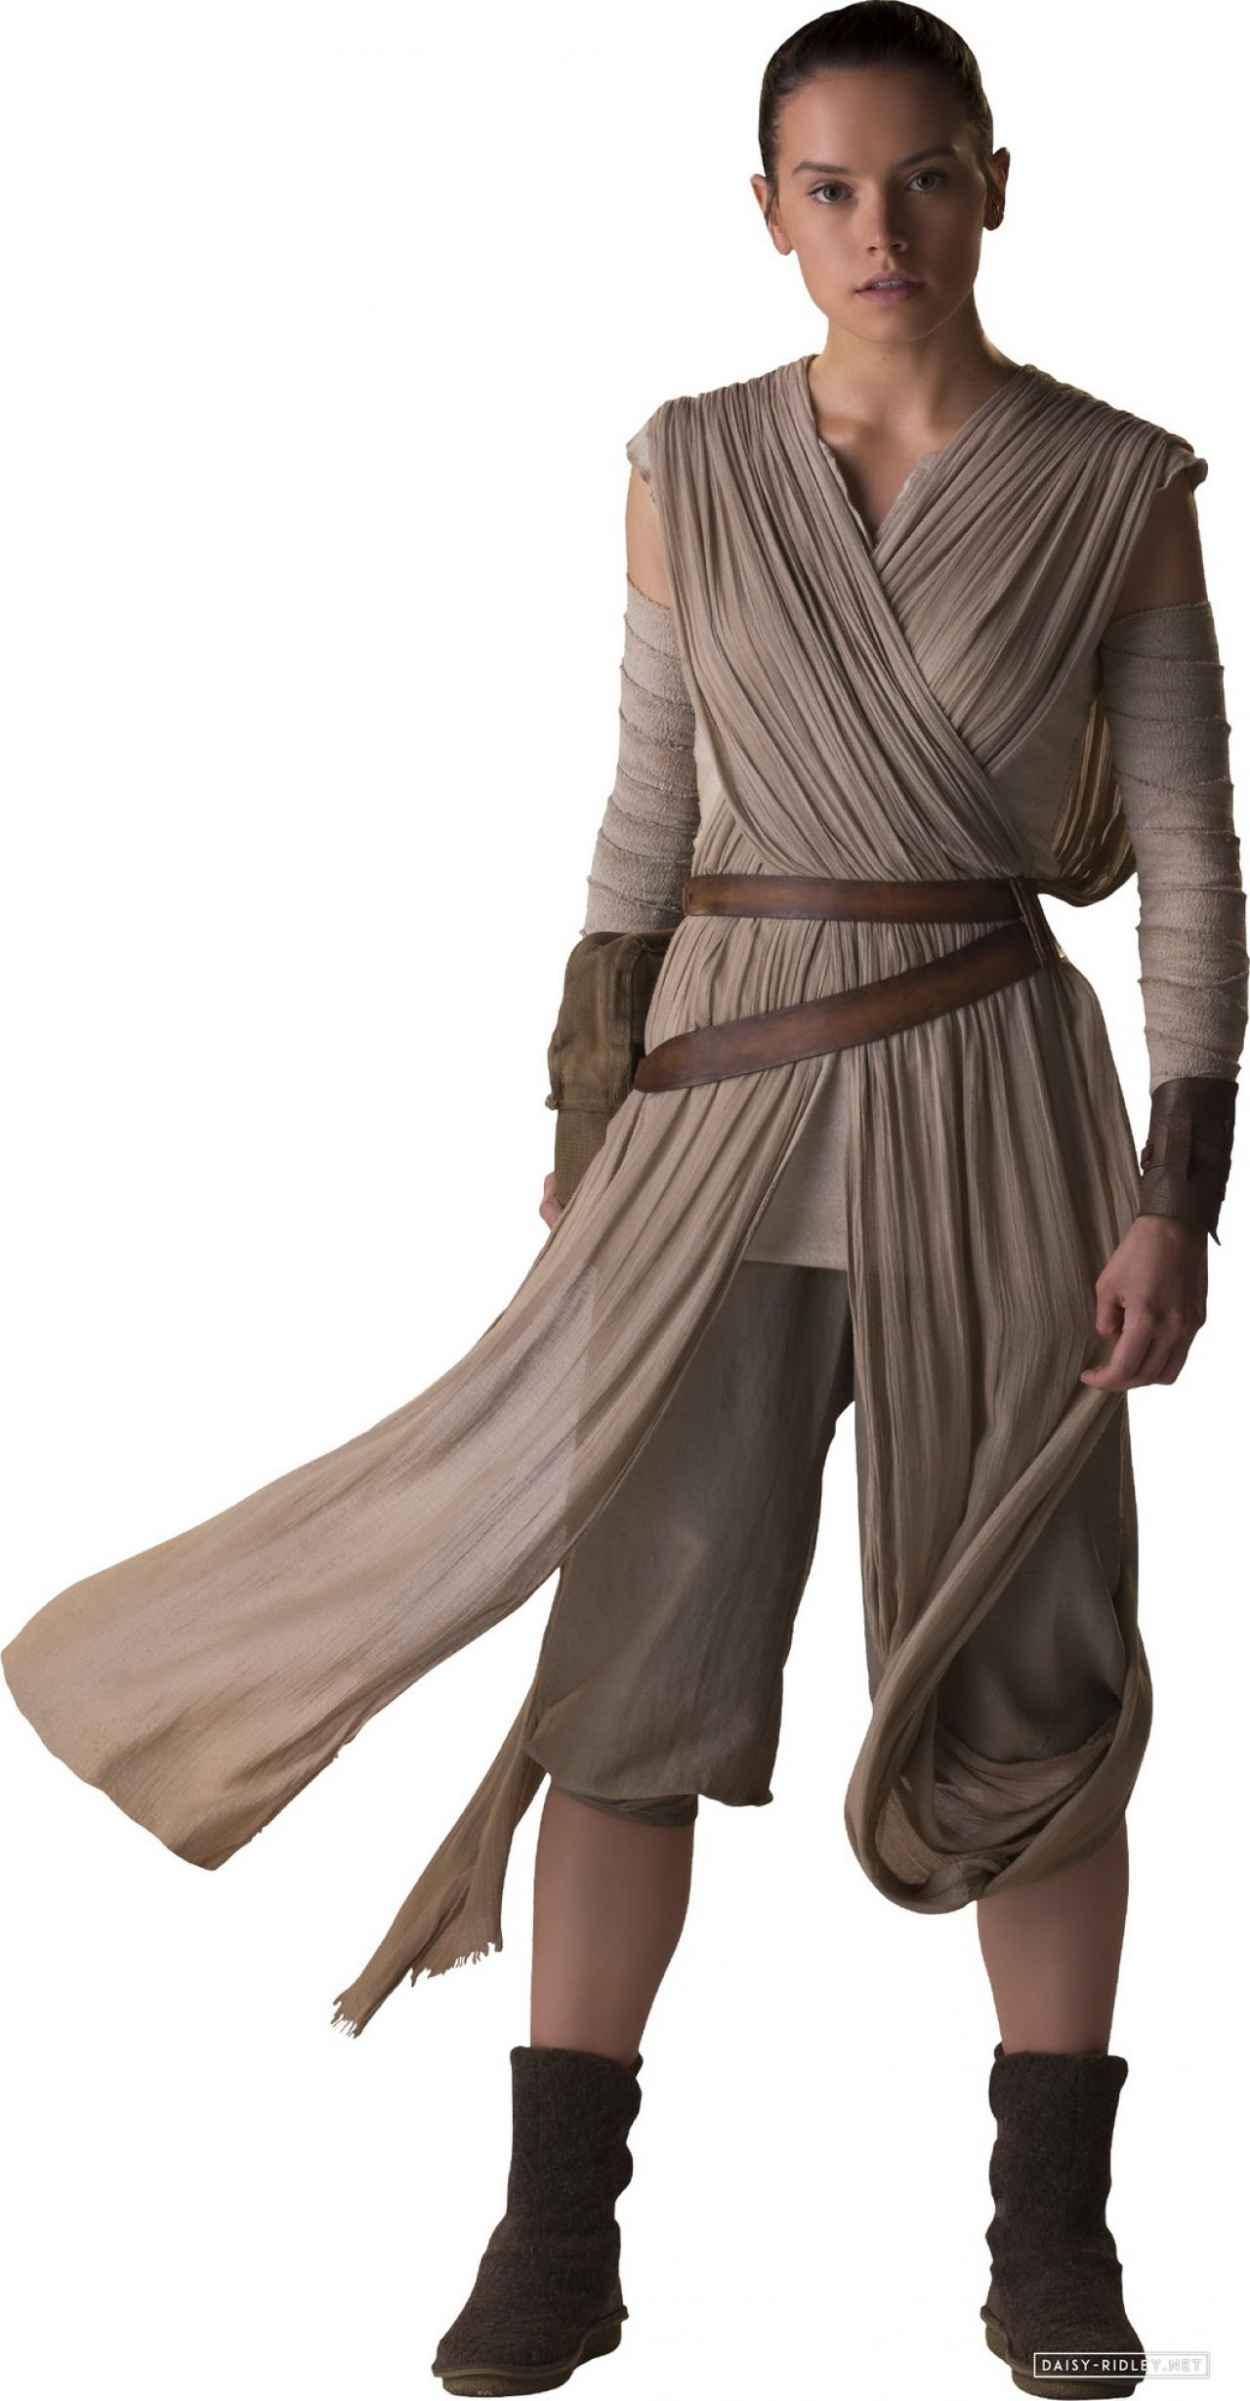 Daisy Ridley - Star Wars: The Force Awakens Poster and Photos (2015)-3